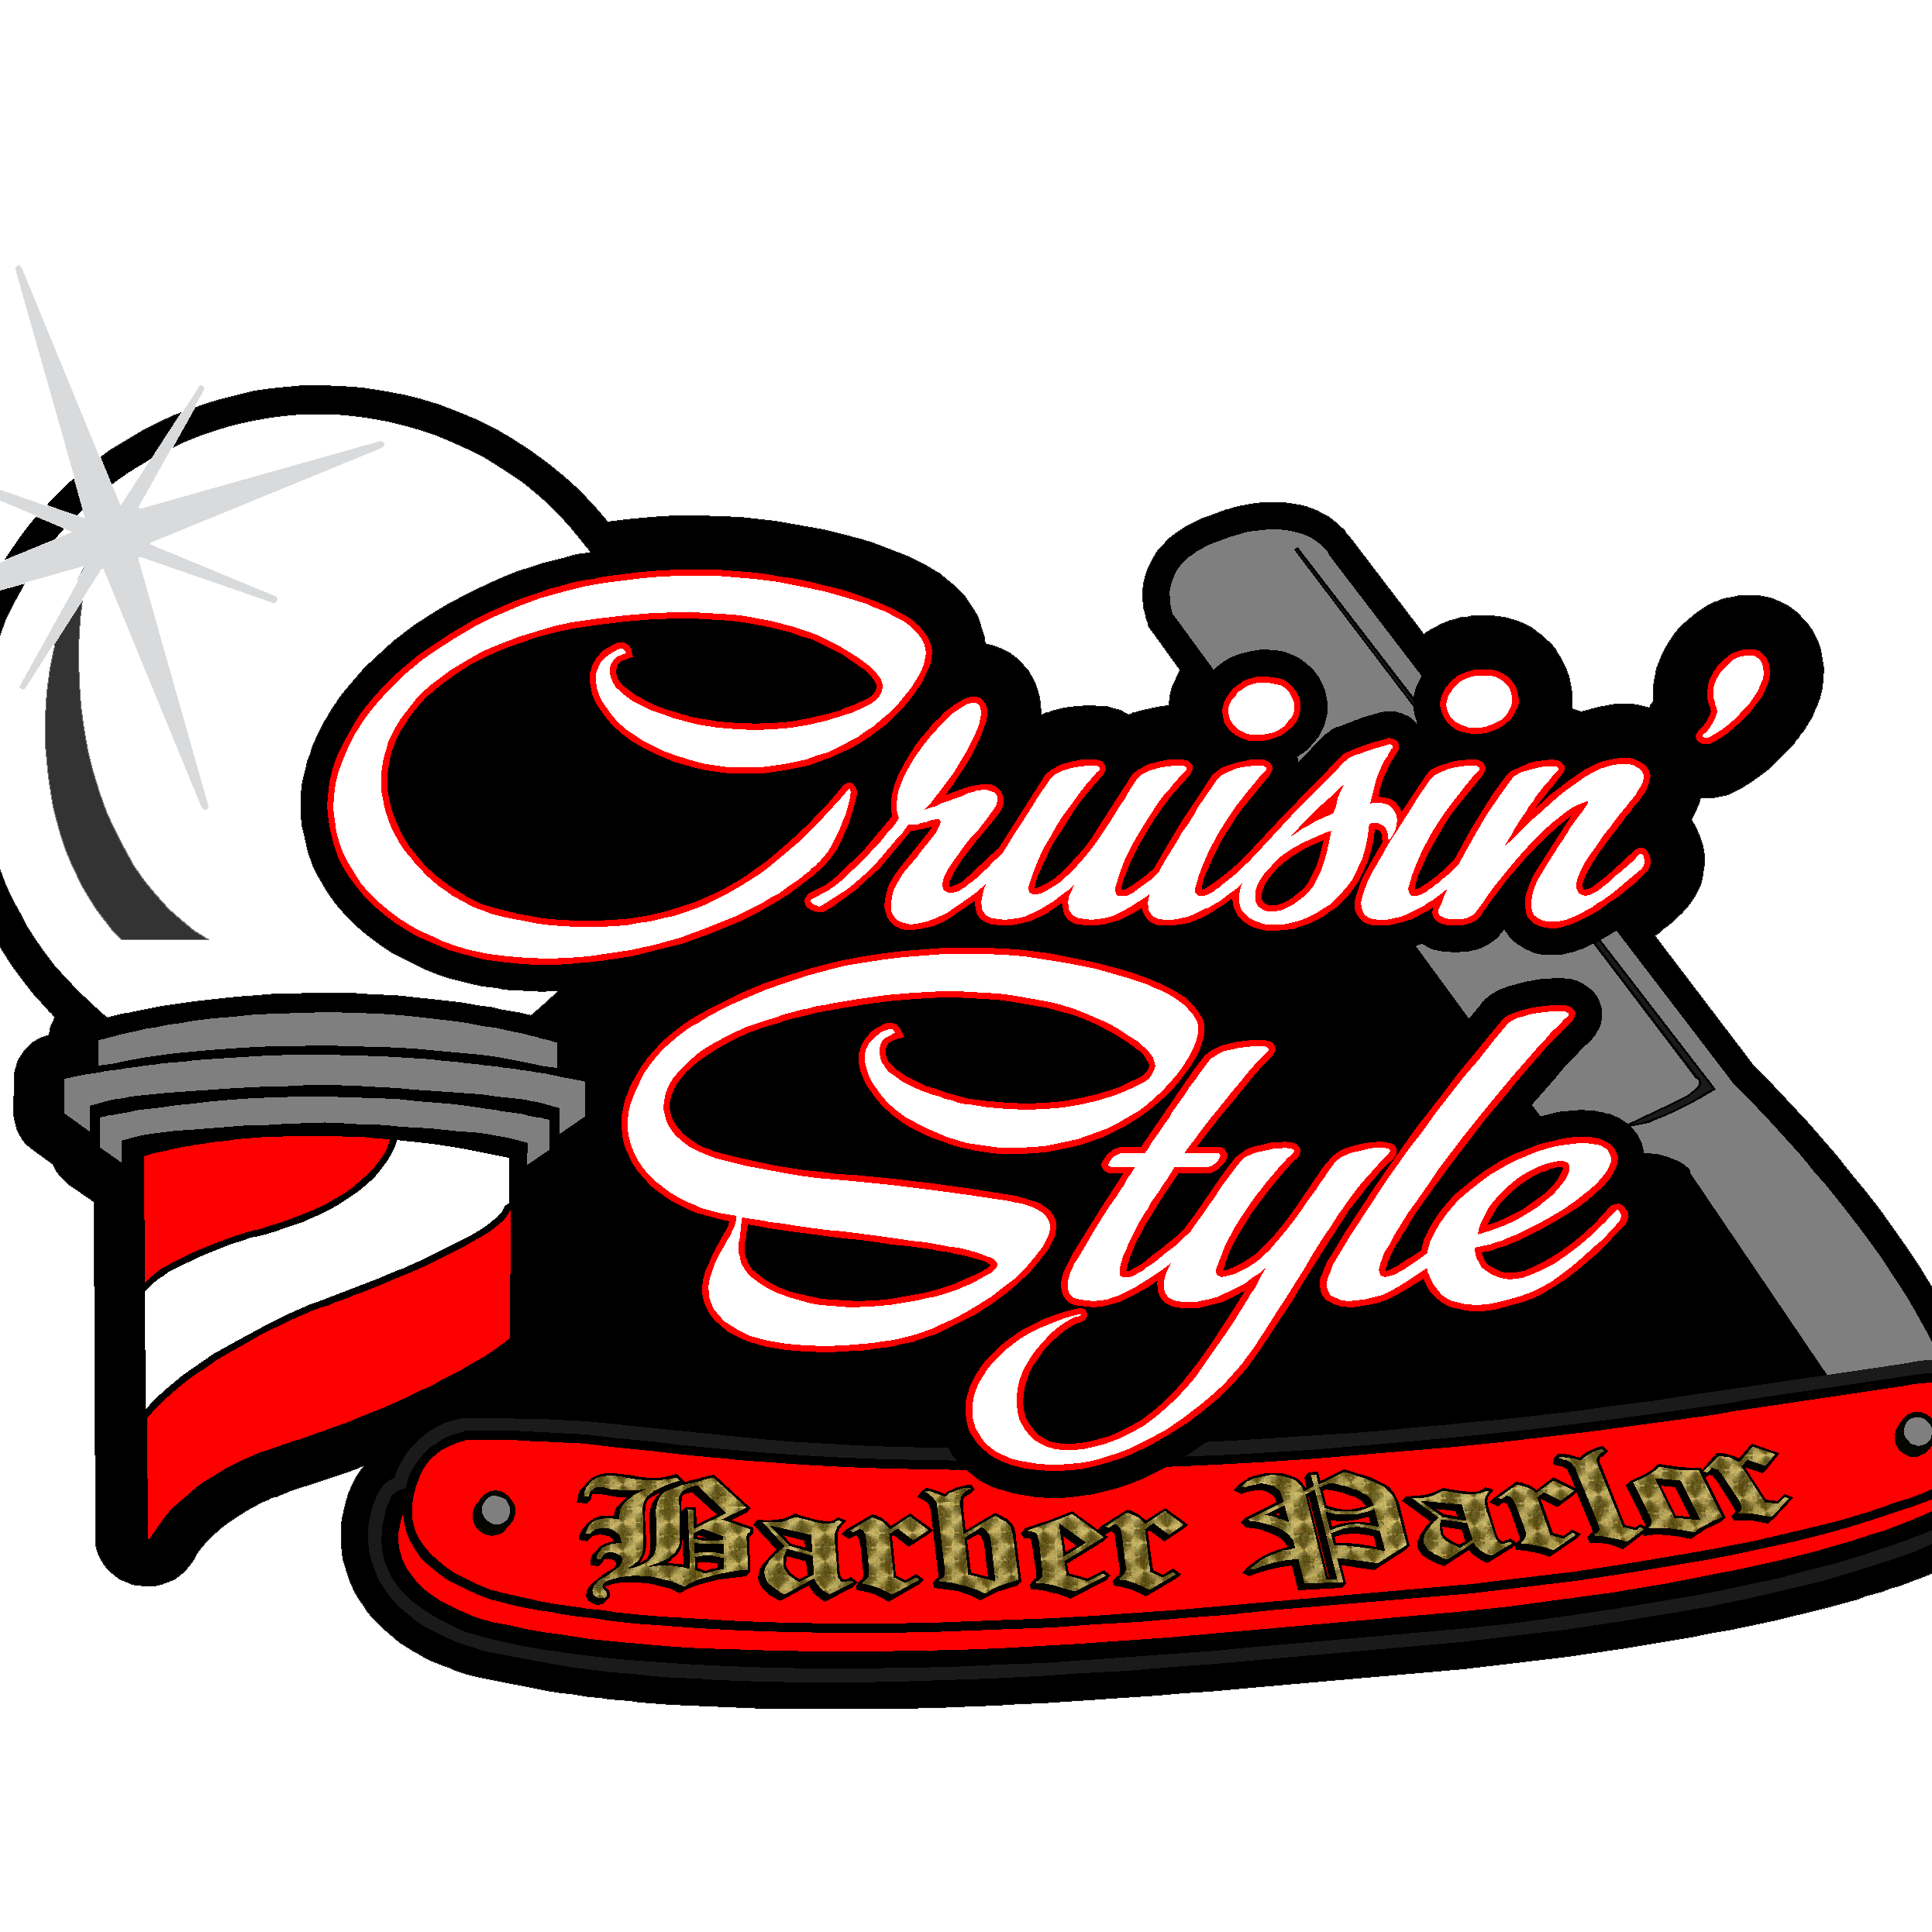 Cruisin' Style Barber Parlor